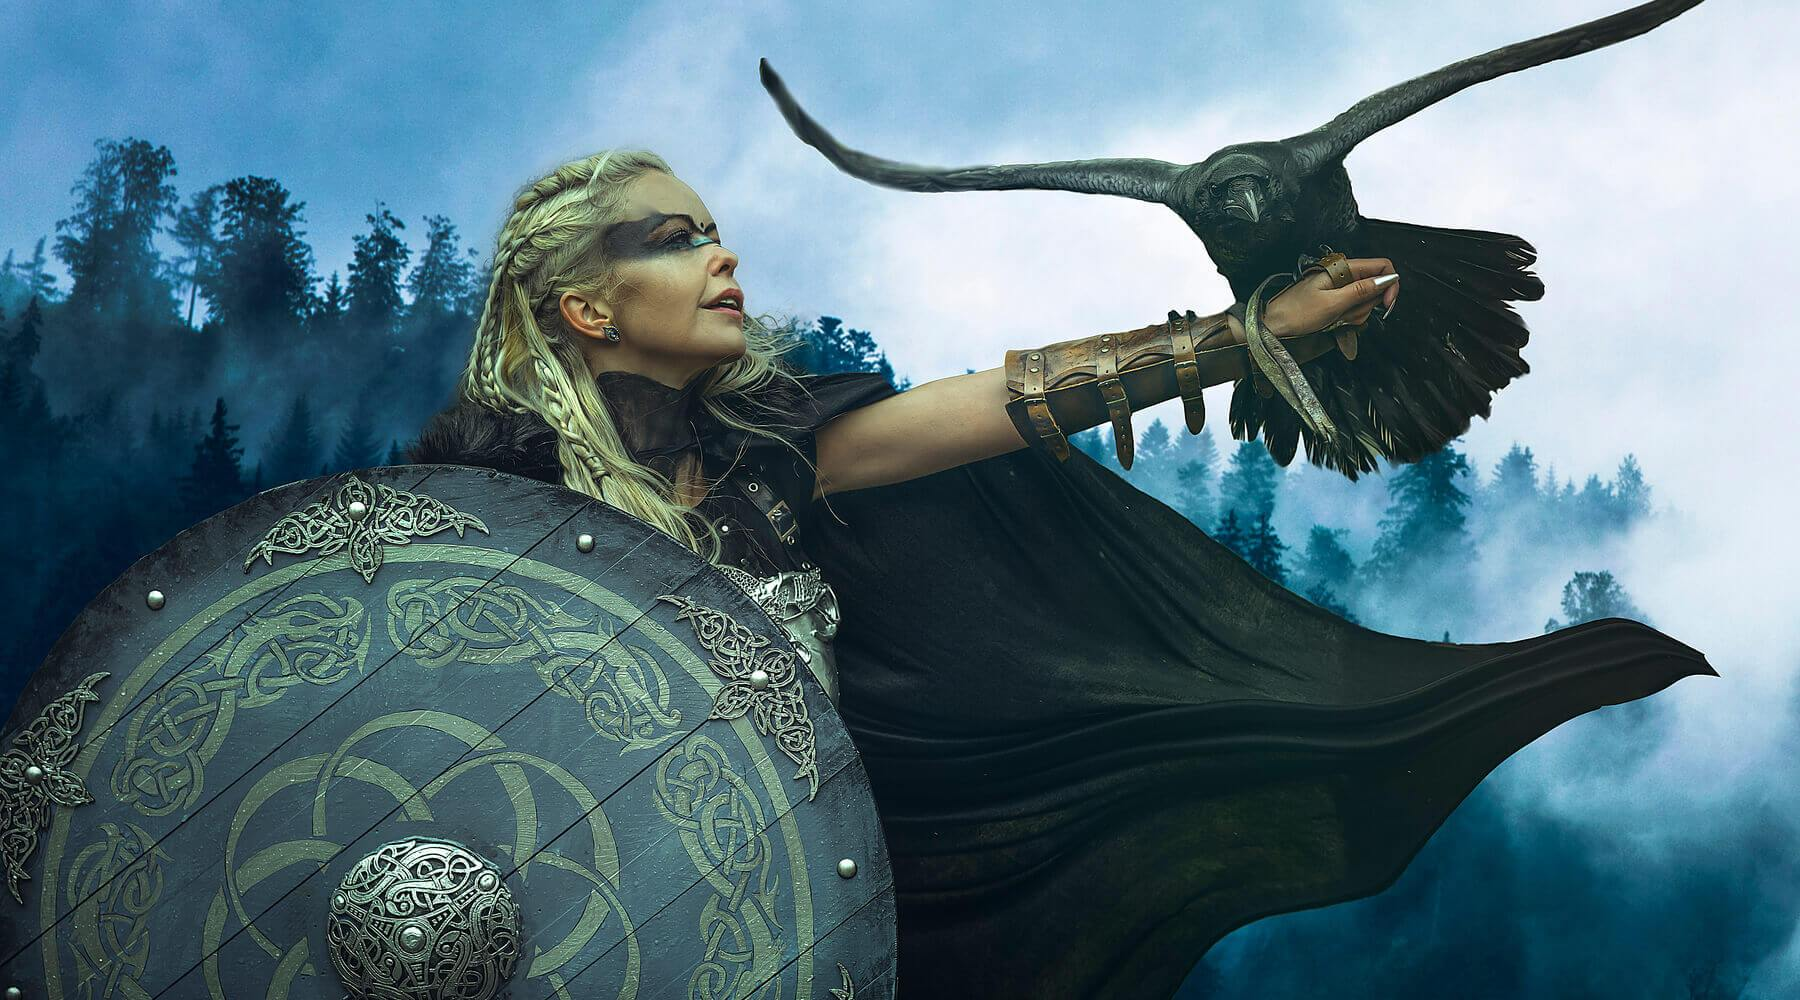 Norse Female Warrior holding a shield and a raven